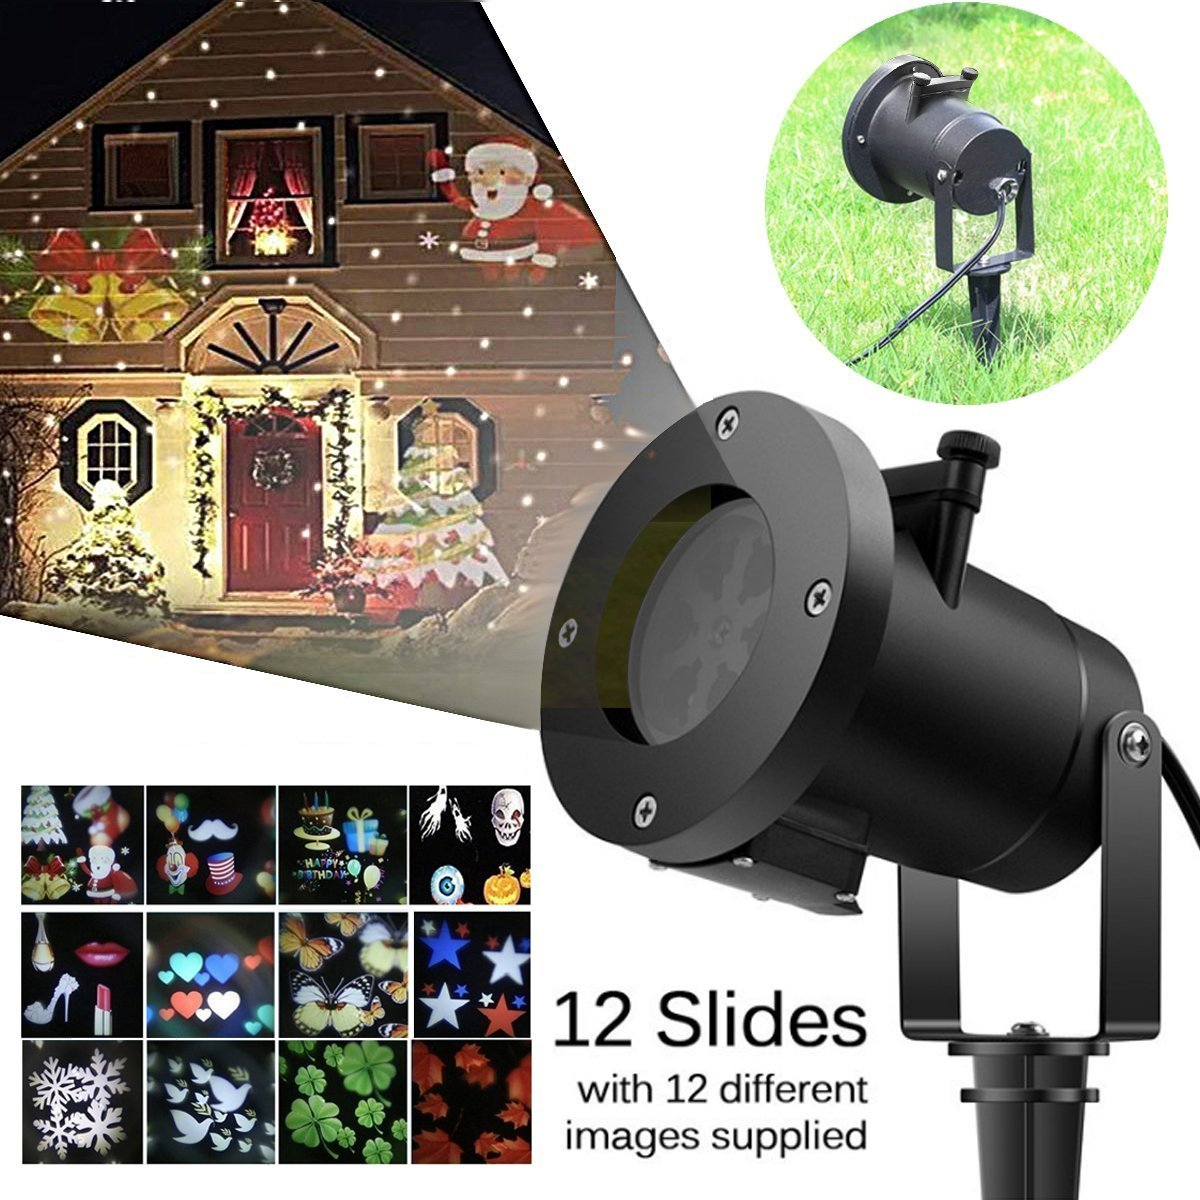 ESUN Christmas Laser Projector Lights, Halloween Outdoor Laser Light, LED Rotating Projector with 12 Replaceable Colorful Slides, Waterproof Snowflakes Spotlight for Festival Party Garden Yard by  ESUN